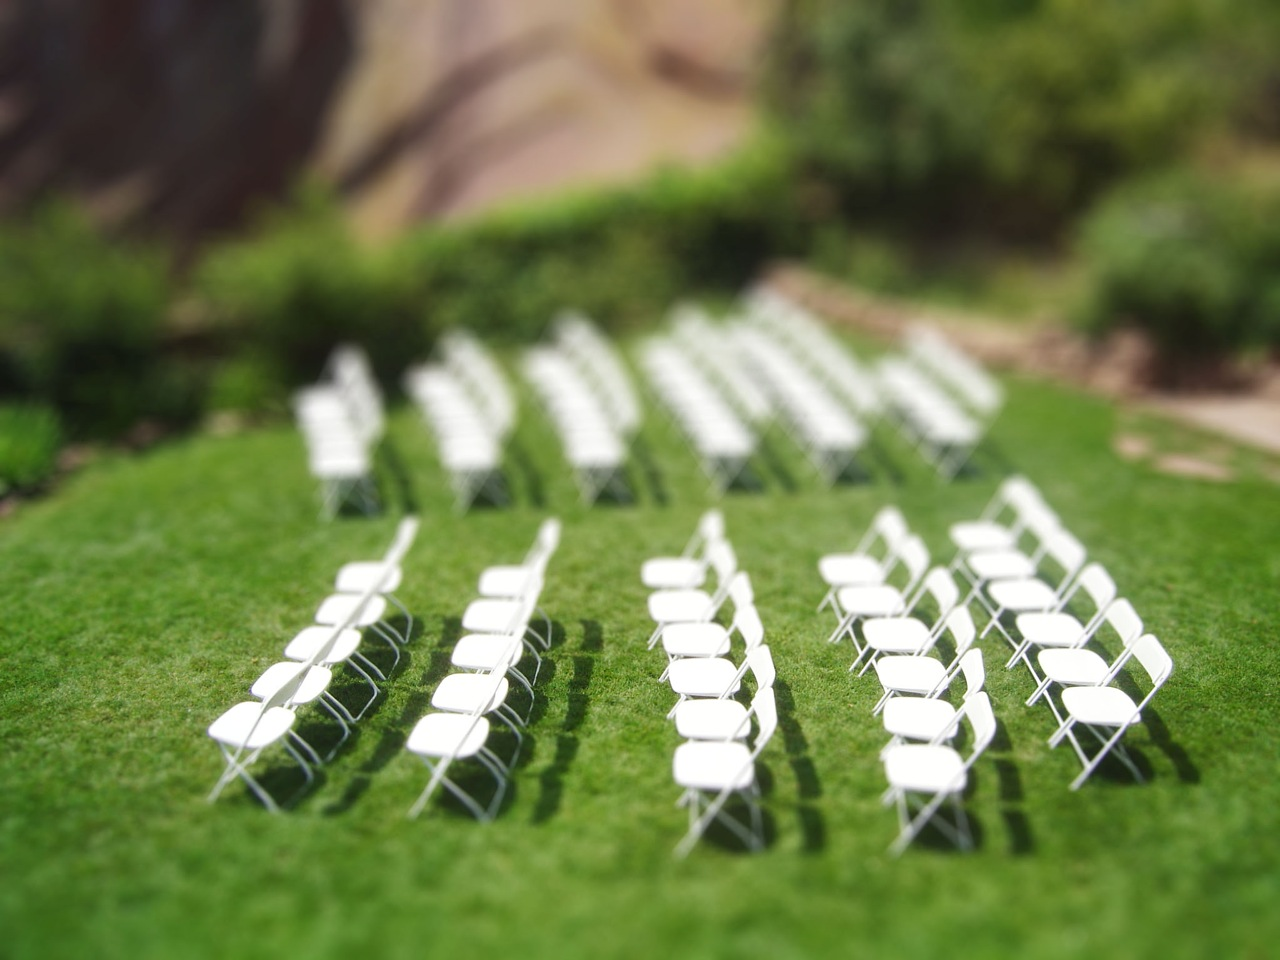 Messin around with chairs Fake tilt Shift Photography